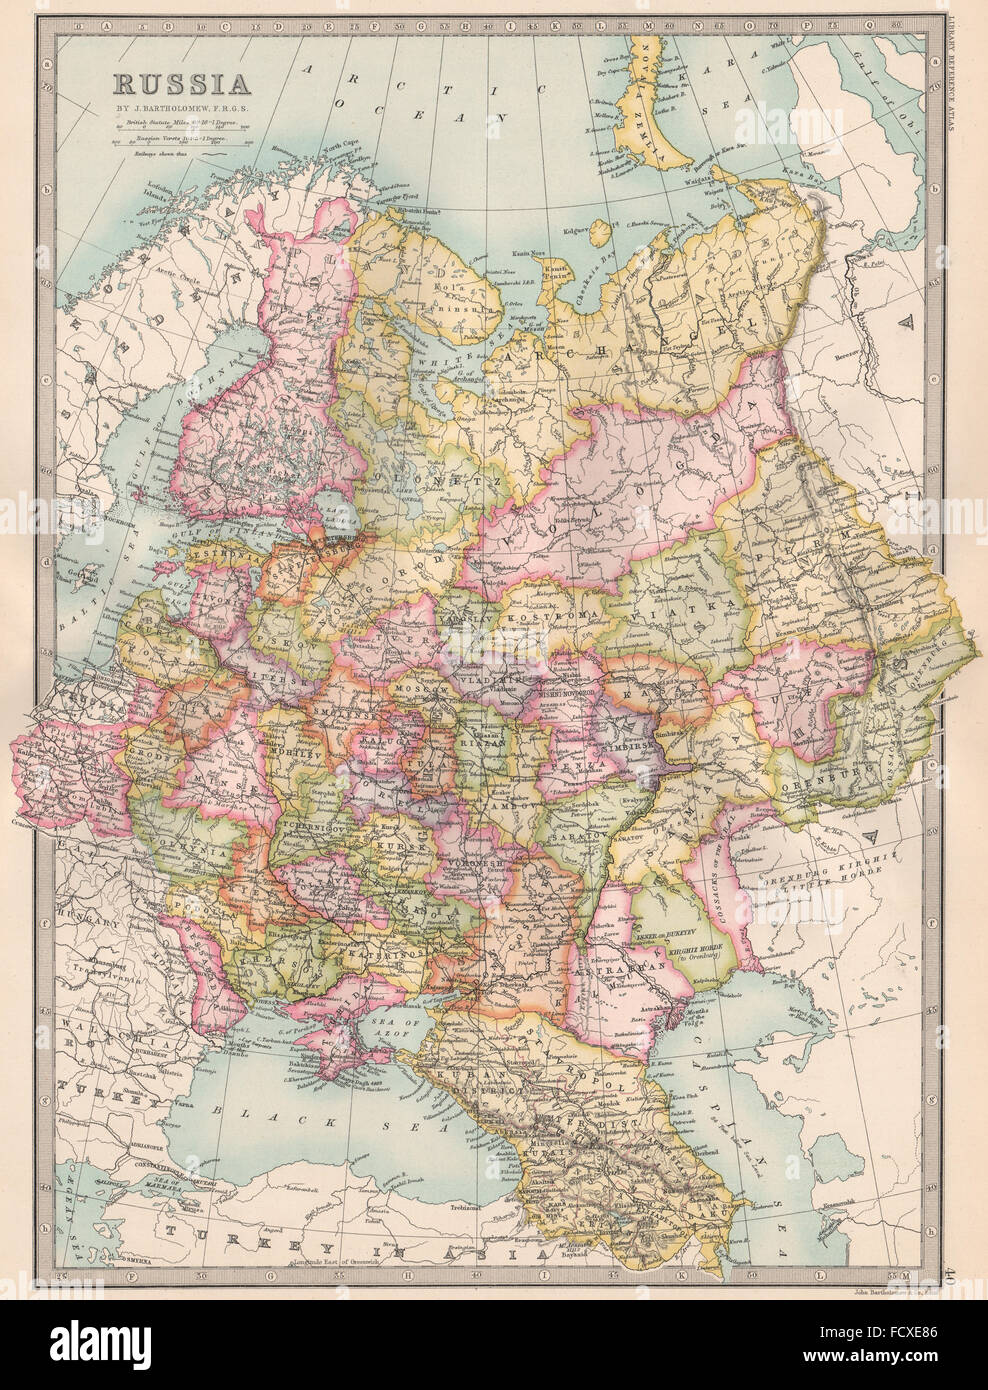 Finland russia map stock photos finland russia map stock images european russia including caucasus finland bartholomew 1890 antique map stock image gumiabroncs Gallery